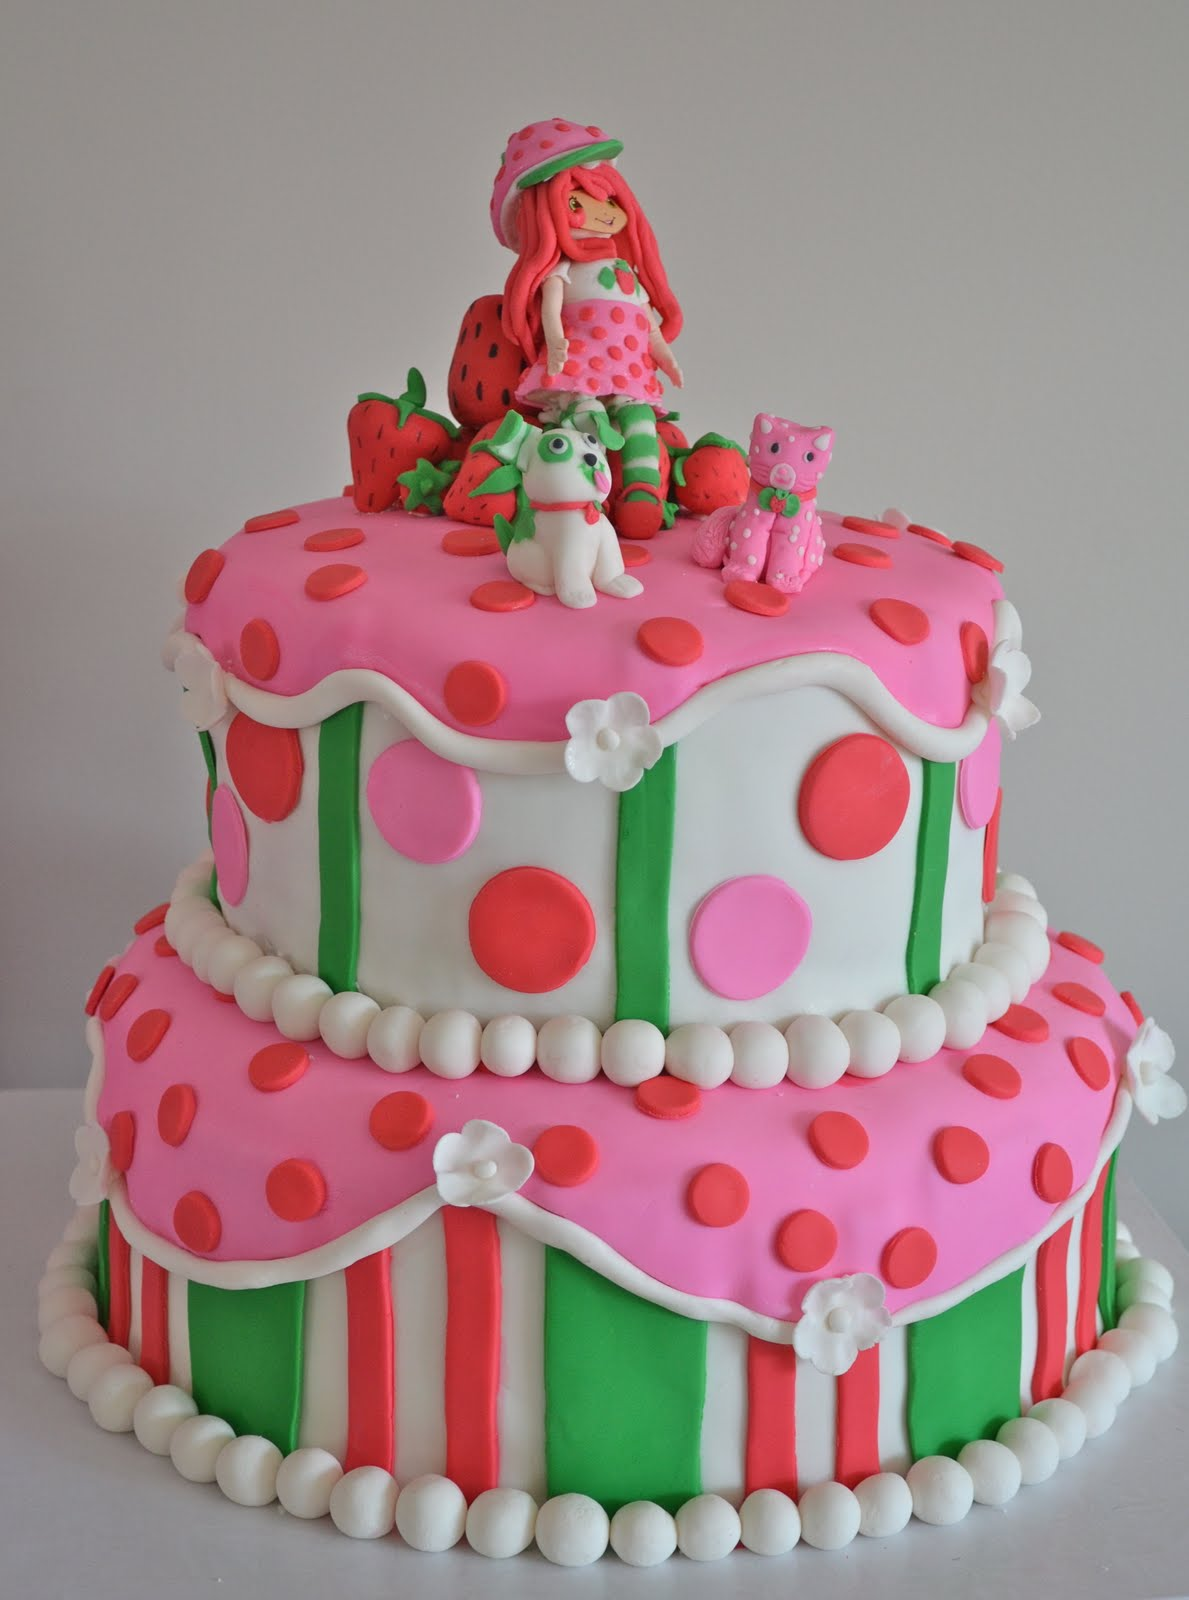 Emily's Custom Bakeshop: Kallie's Strawberry Shortcake Cake